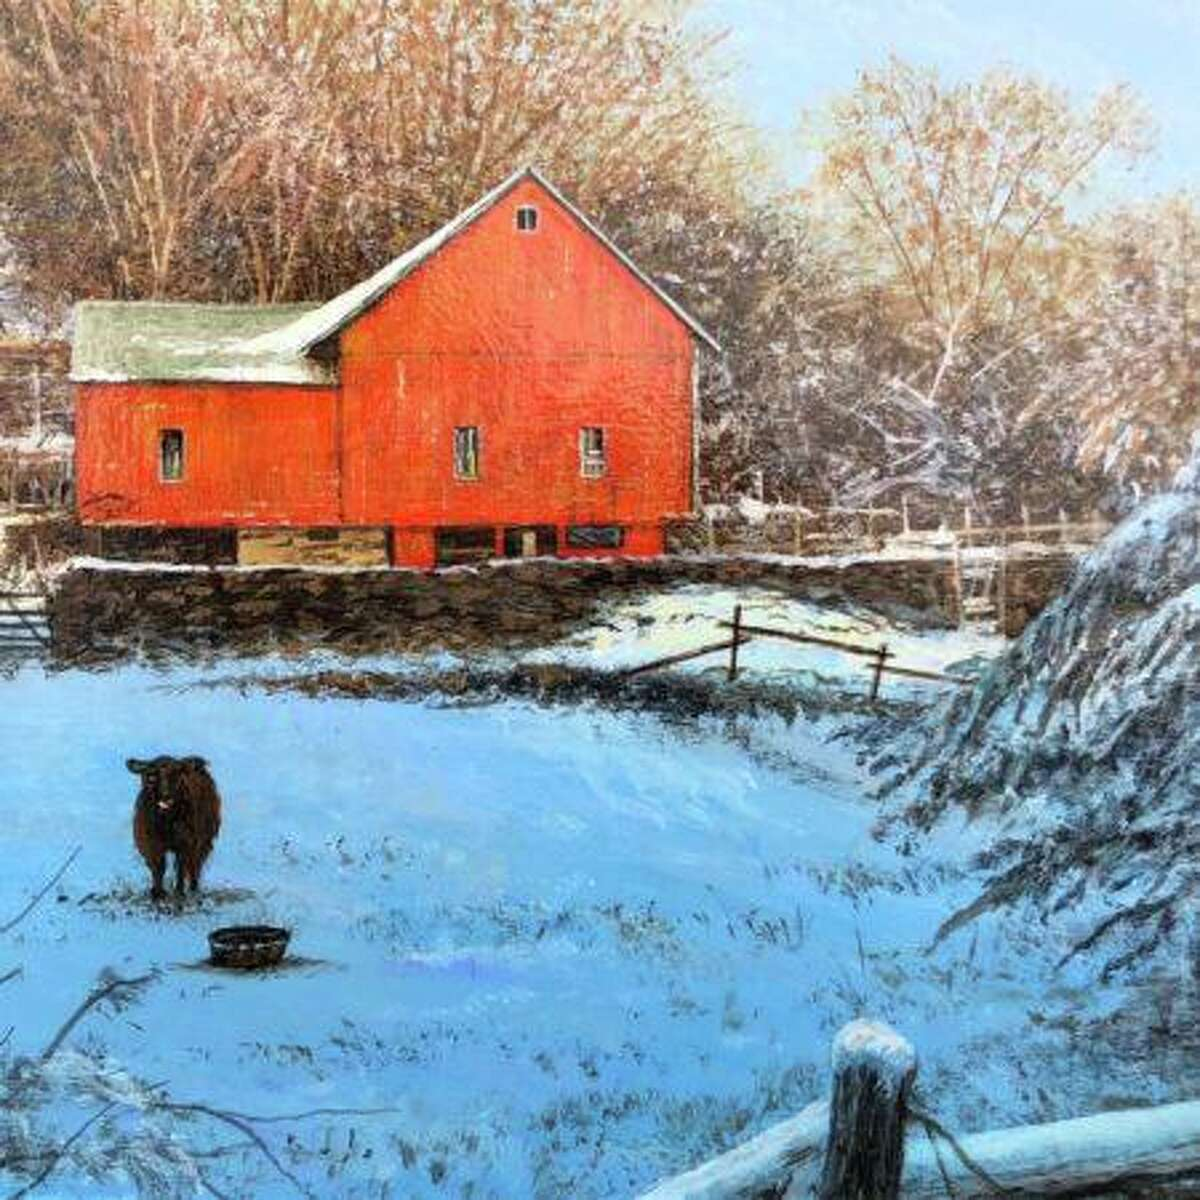 Susan Powell Fine Art's new show, Valentine Gems, features paintings by over 25 favorite award-winning artists. Above, Del-Bourree-Bach, Winter Watch, acrylic.